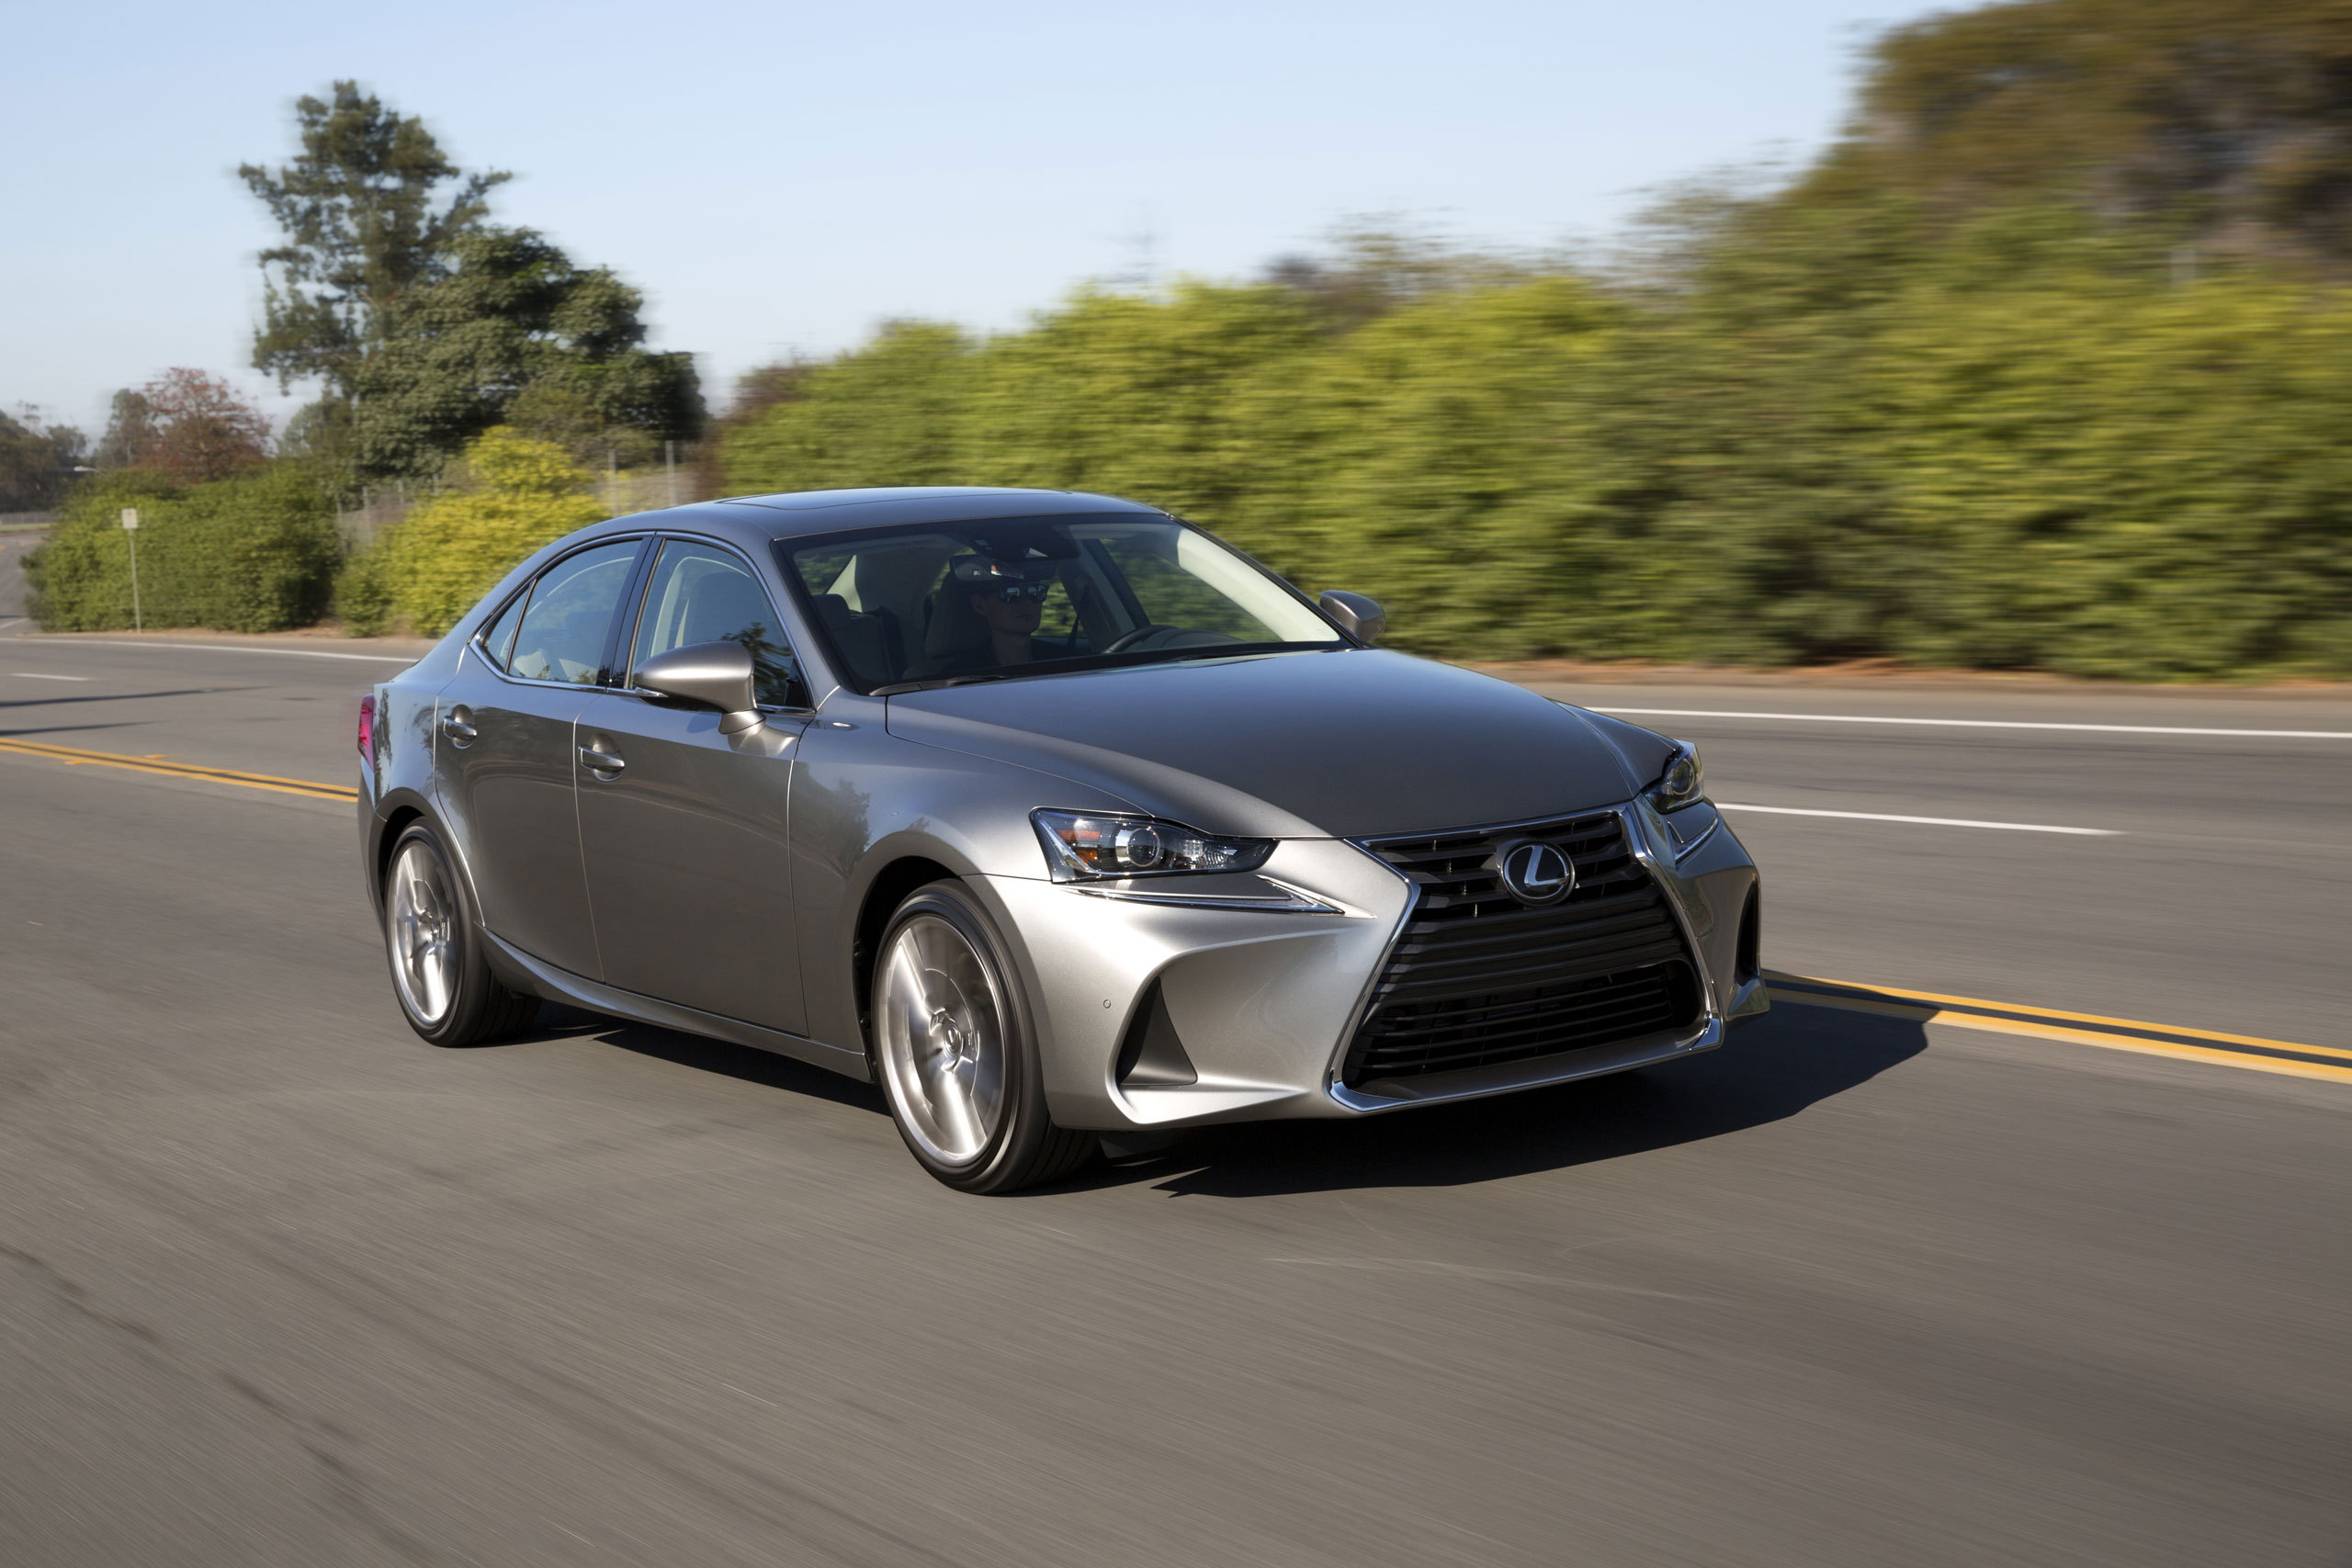 2017 Lexus IS and IS F Sport Launched With Fresh mercials